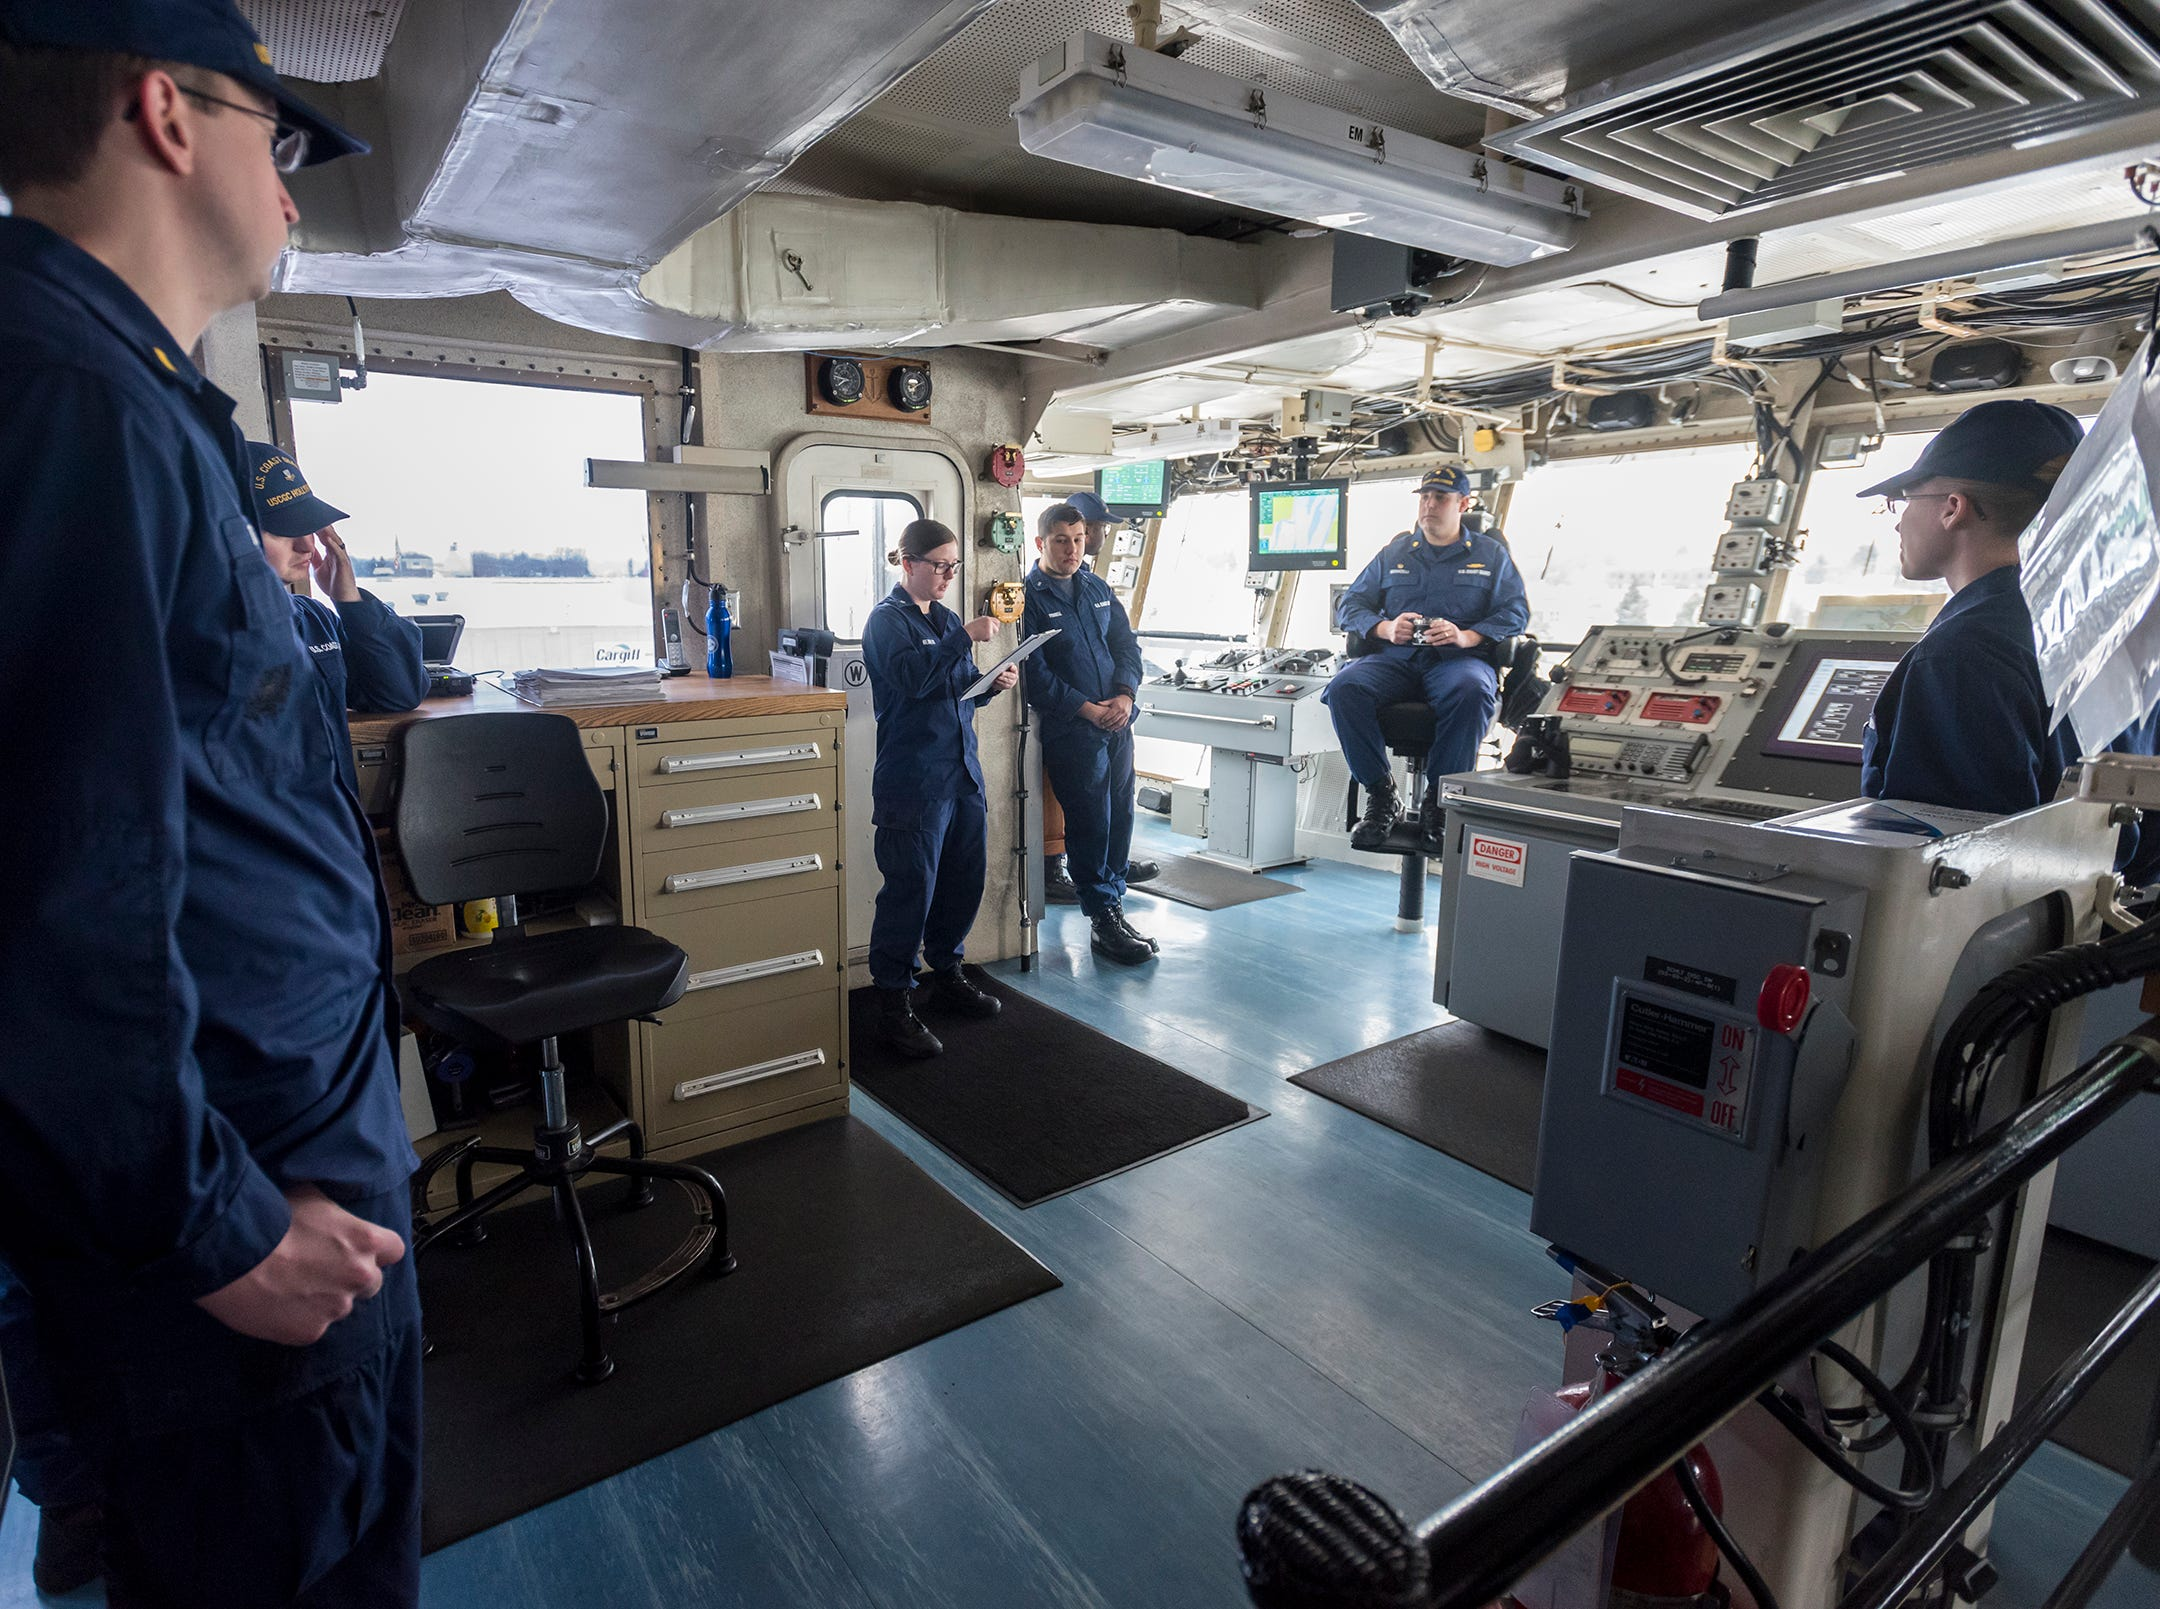 Some of the Hollyhock's crew meet for a short briefing on the ship's bridge before getting underway.